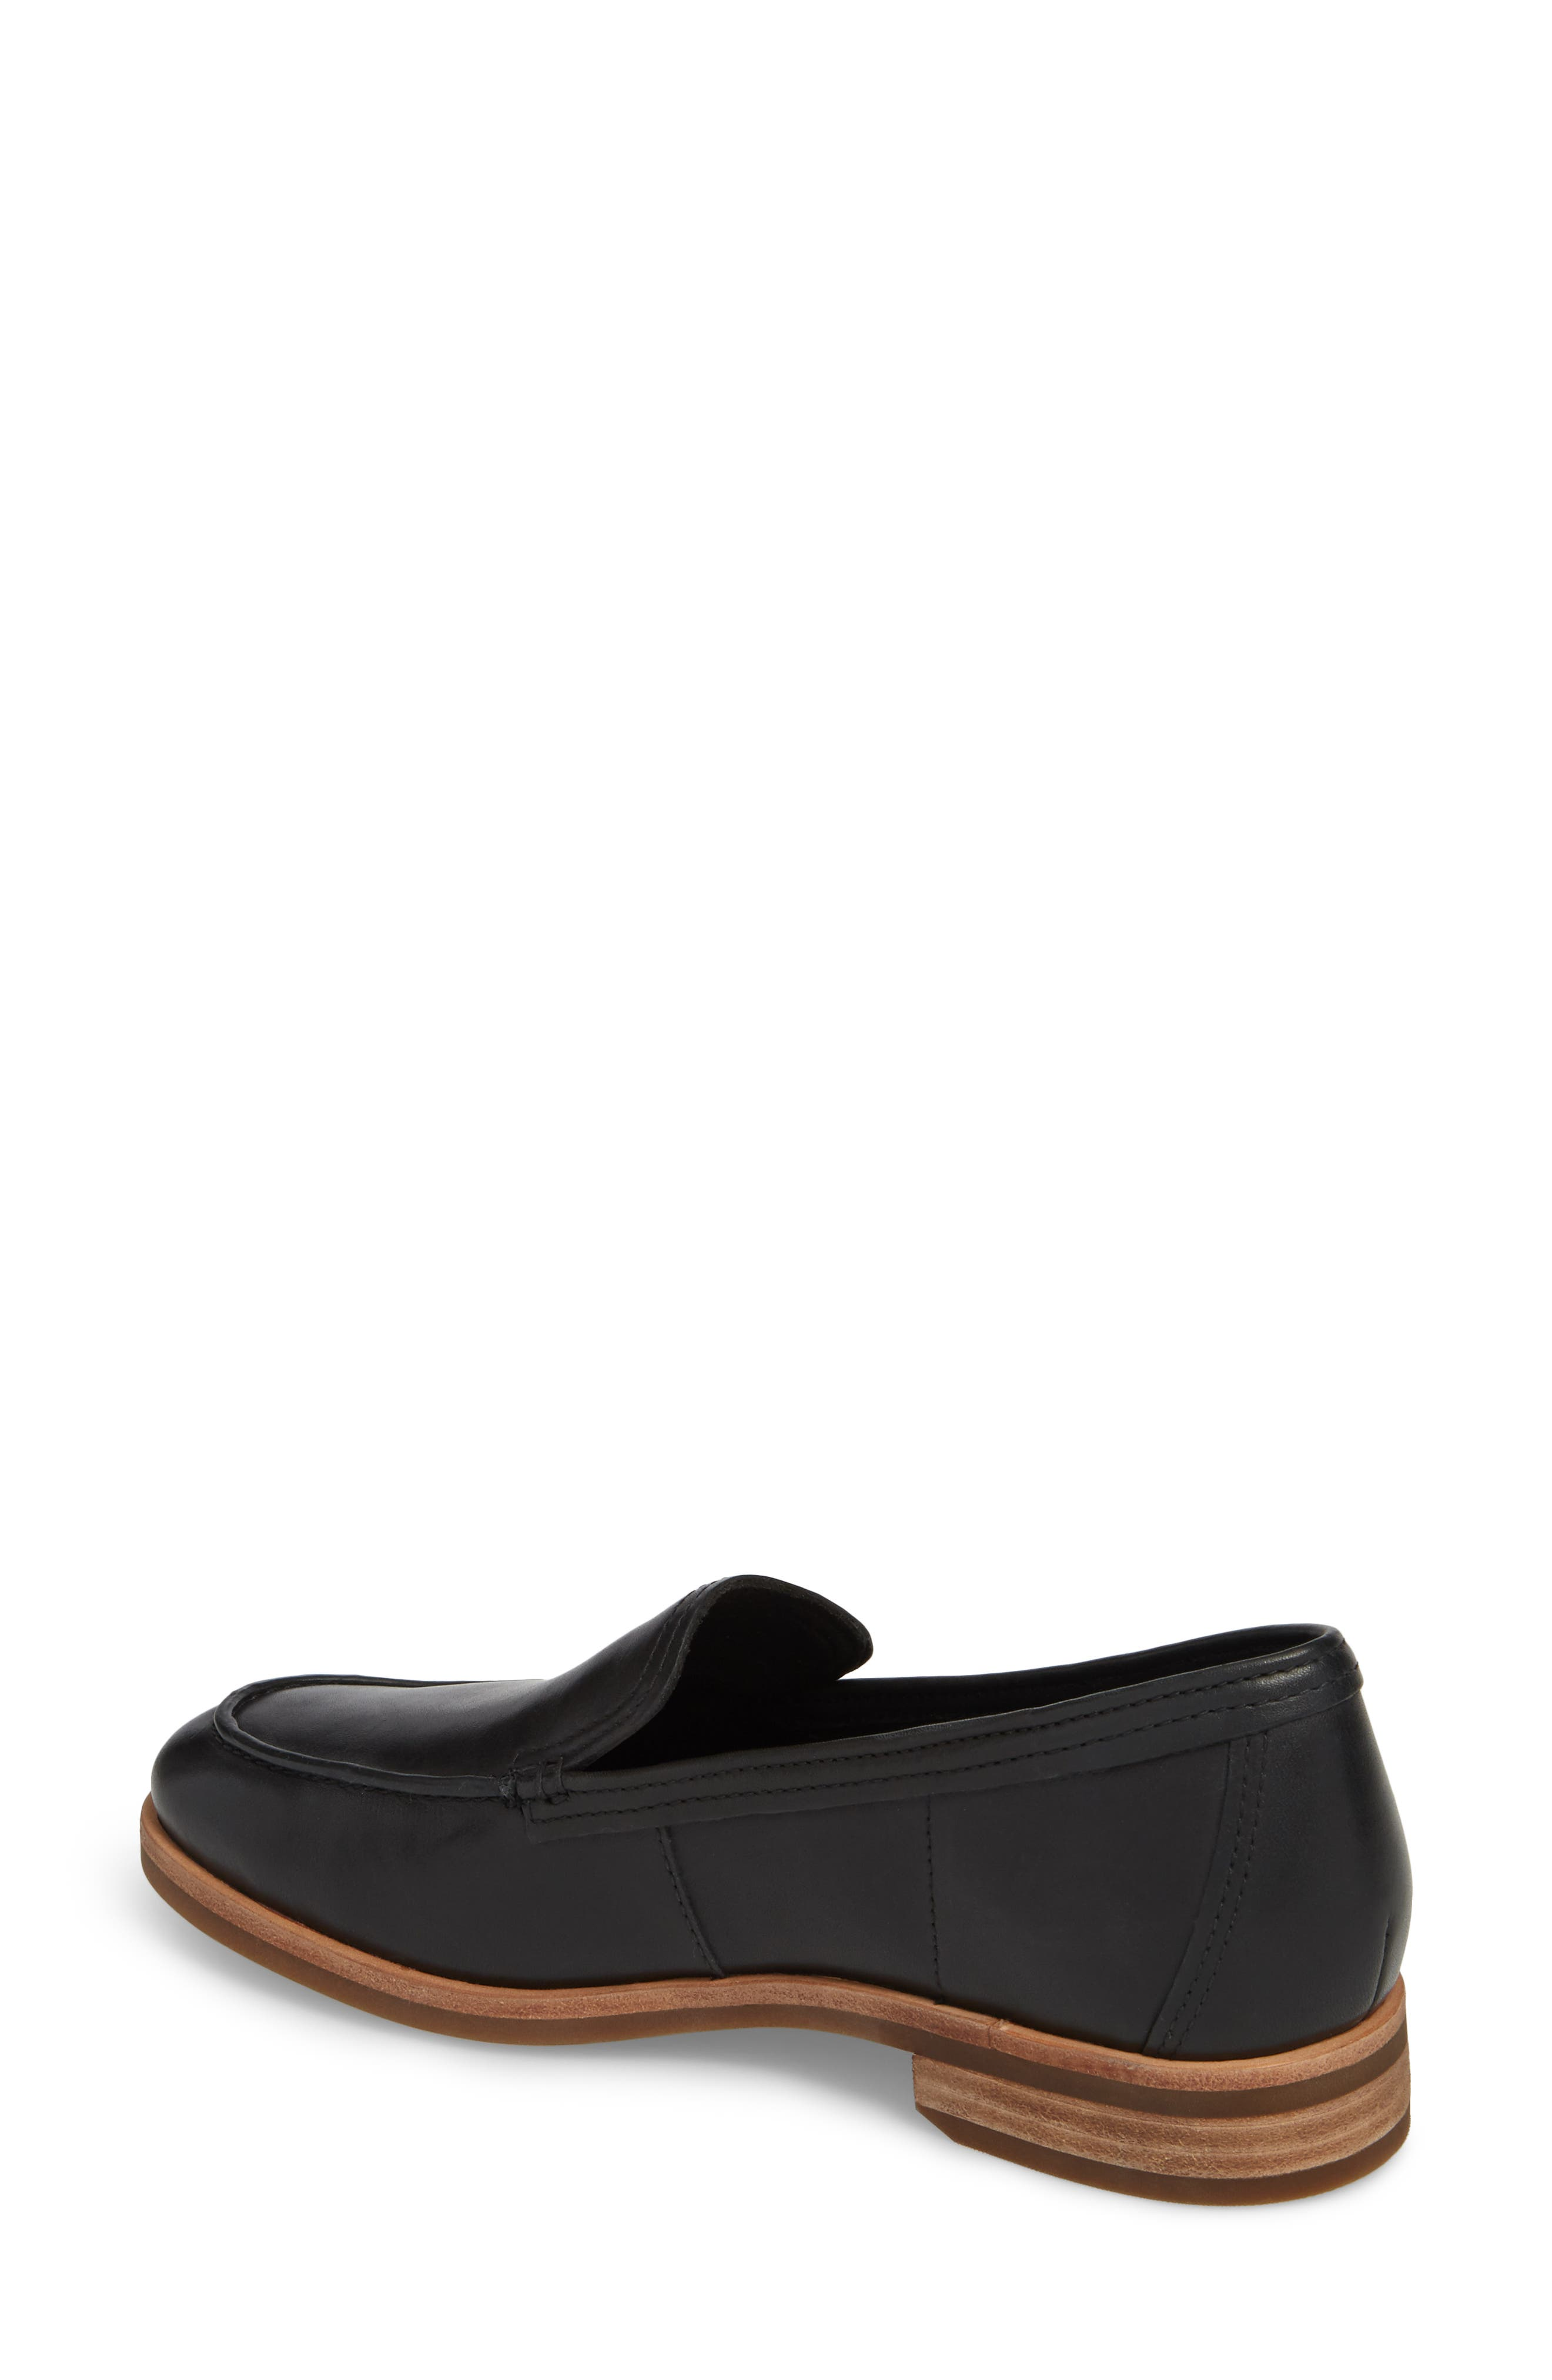 Alternate Image 2  - Timberland Somers Falls Loafer (Women)